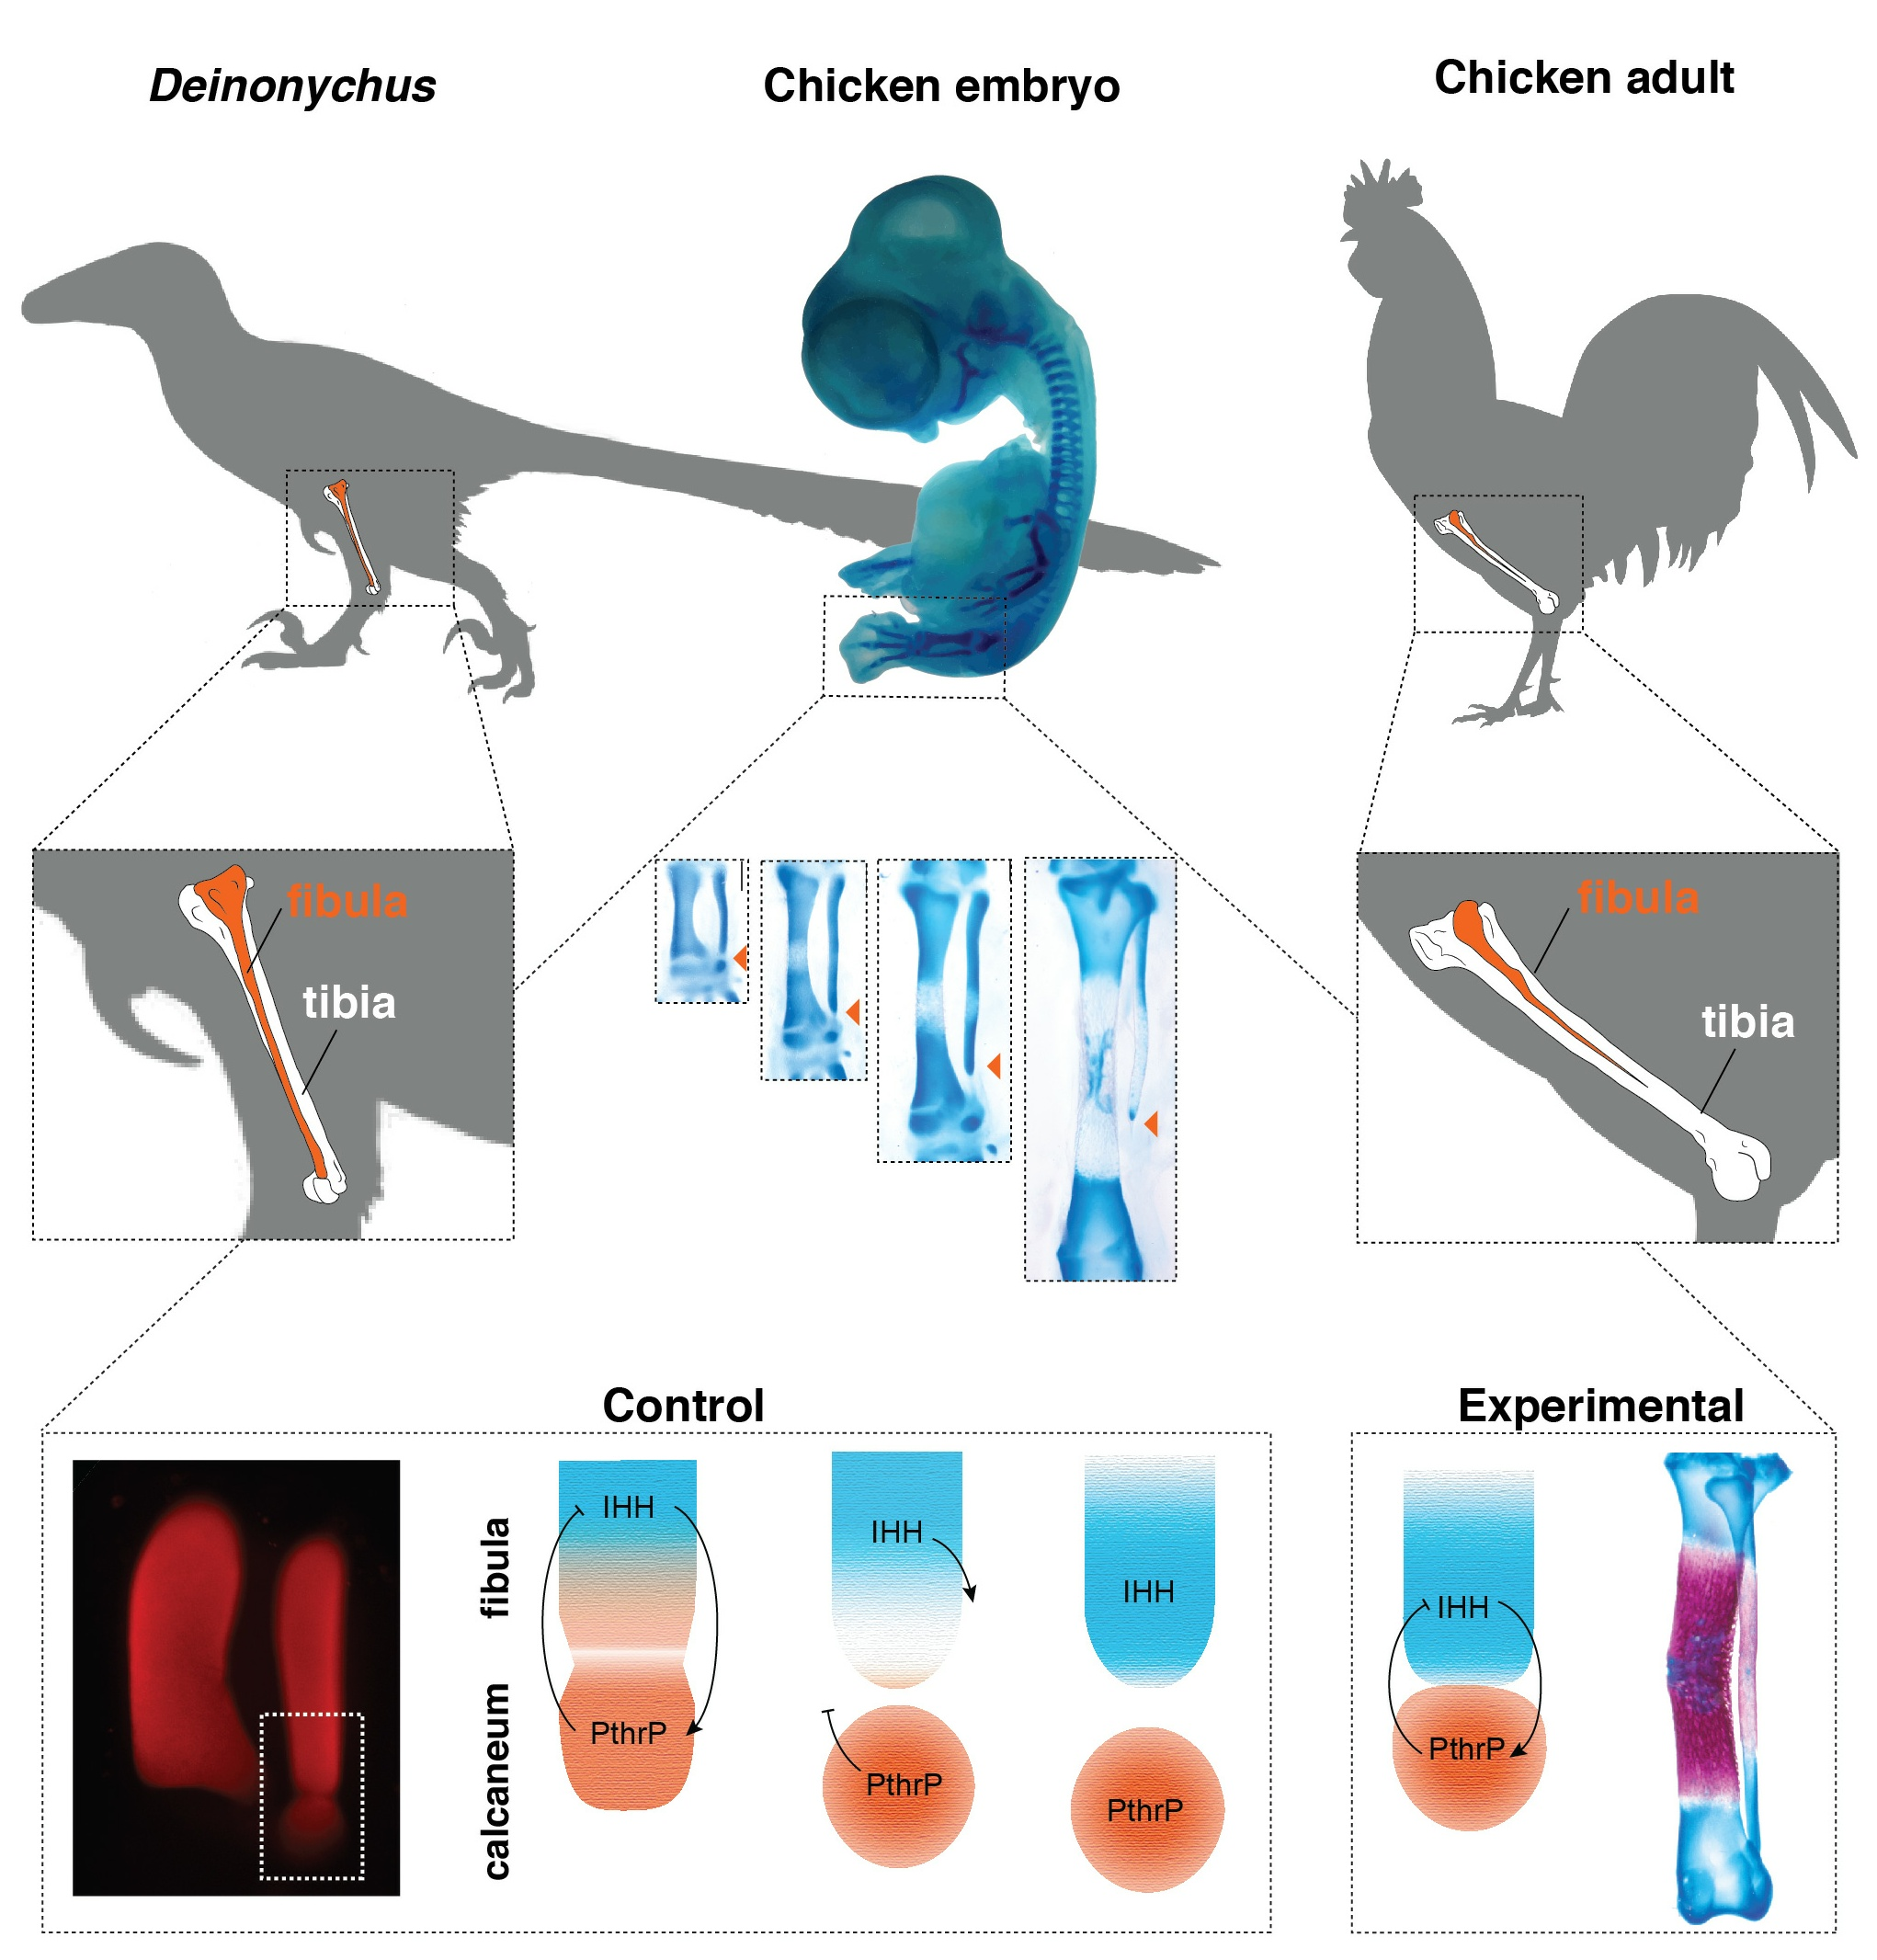 Evolution Reversed In Birds, Giving Them A Dinosaur-Like Lower Leg